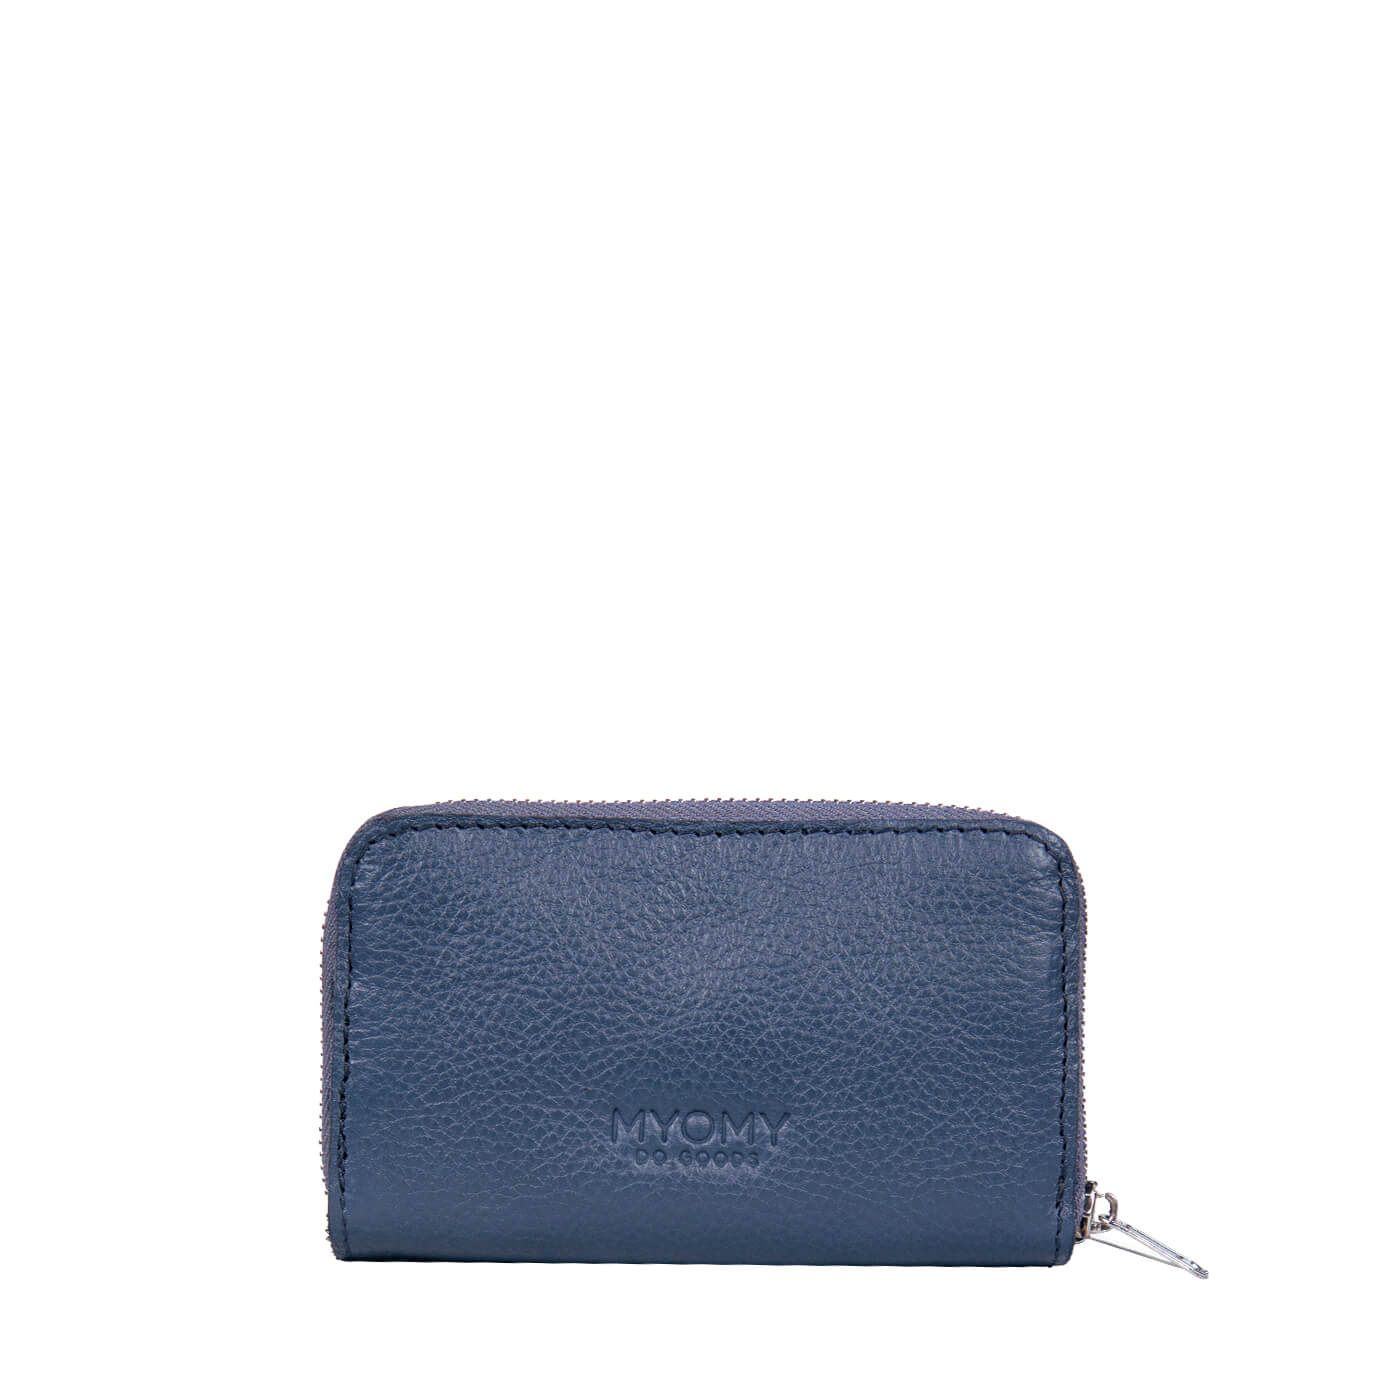 [PRE-ORDER] MY CARRY BAG Wallet Medium – seville denim blue